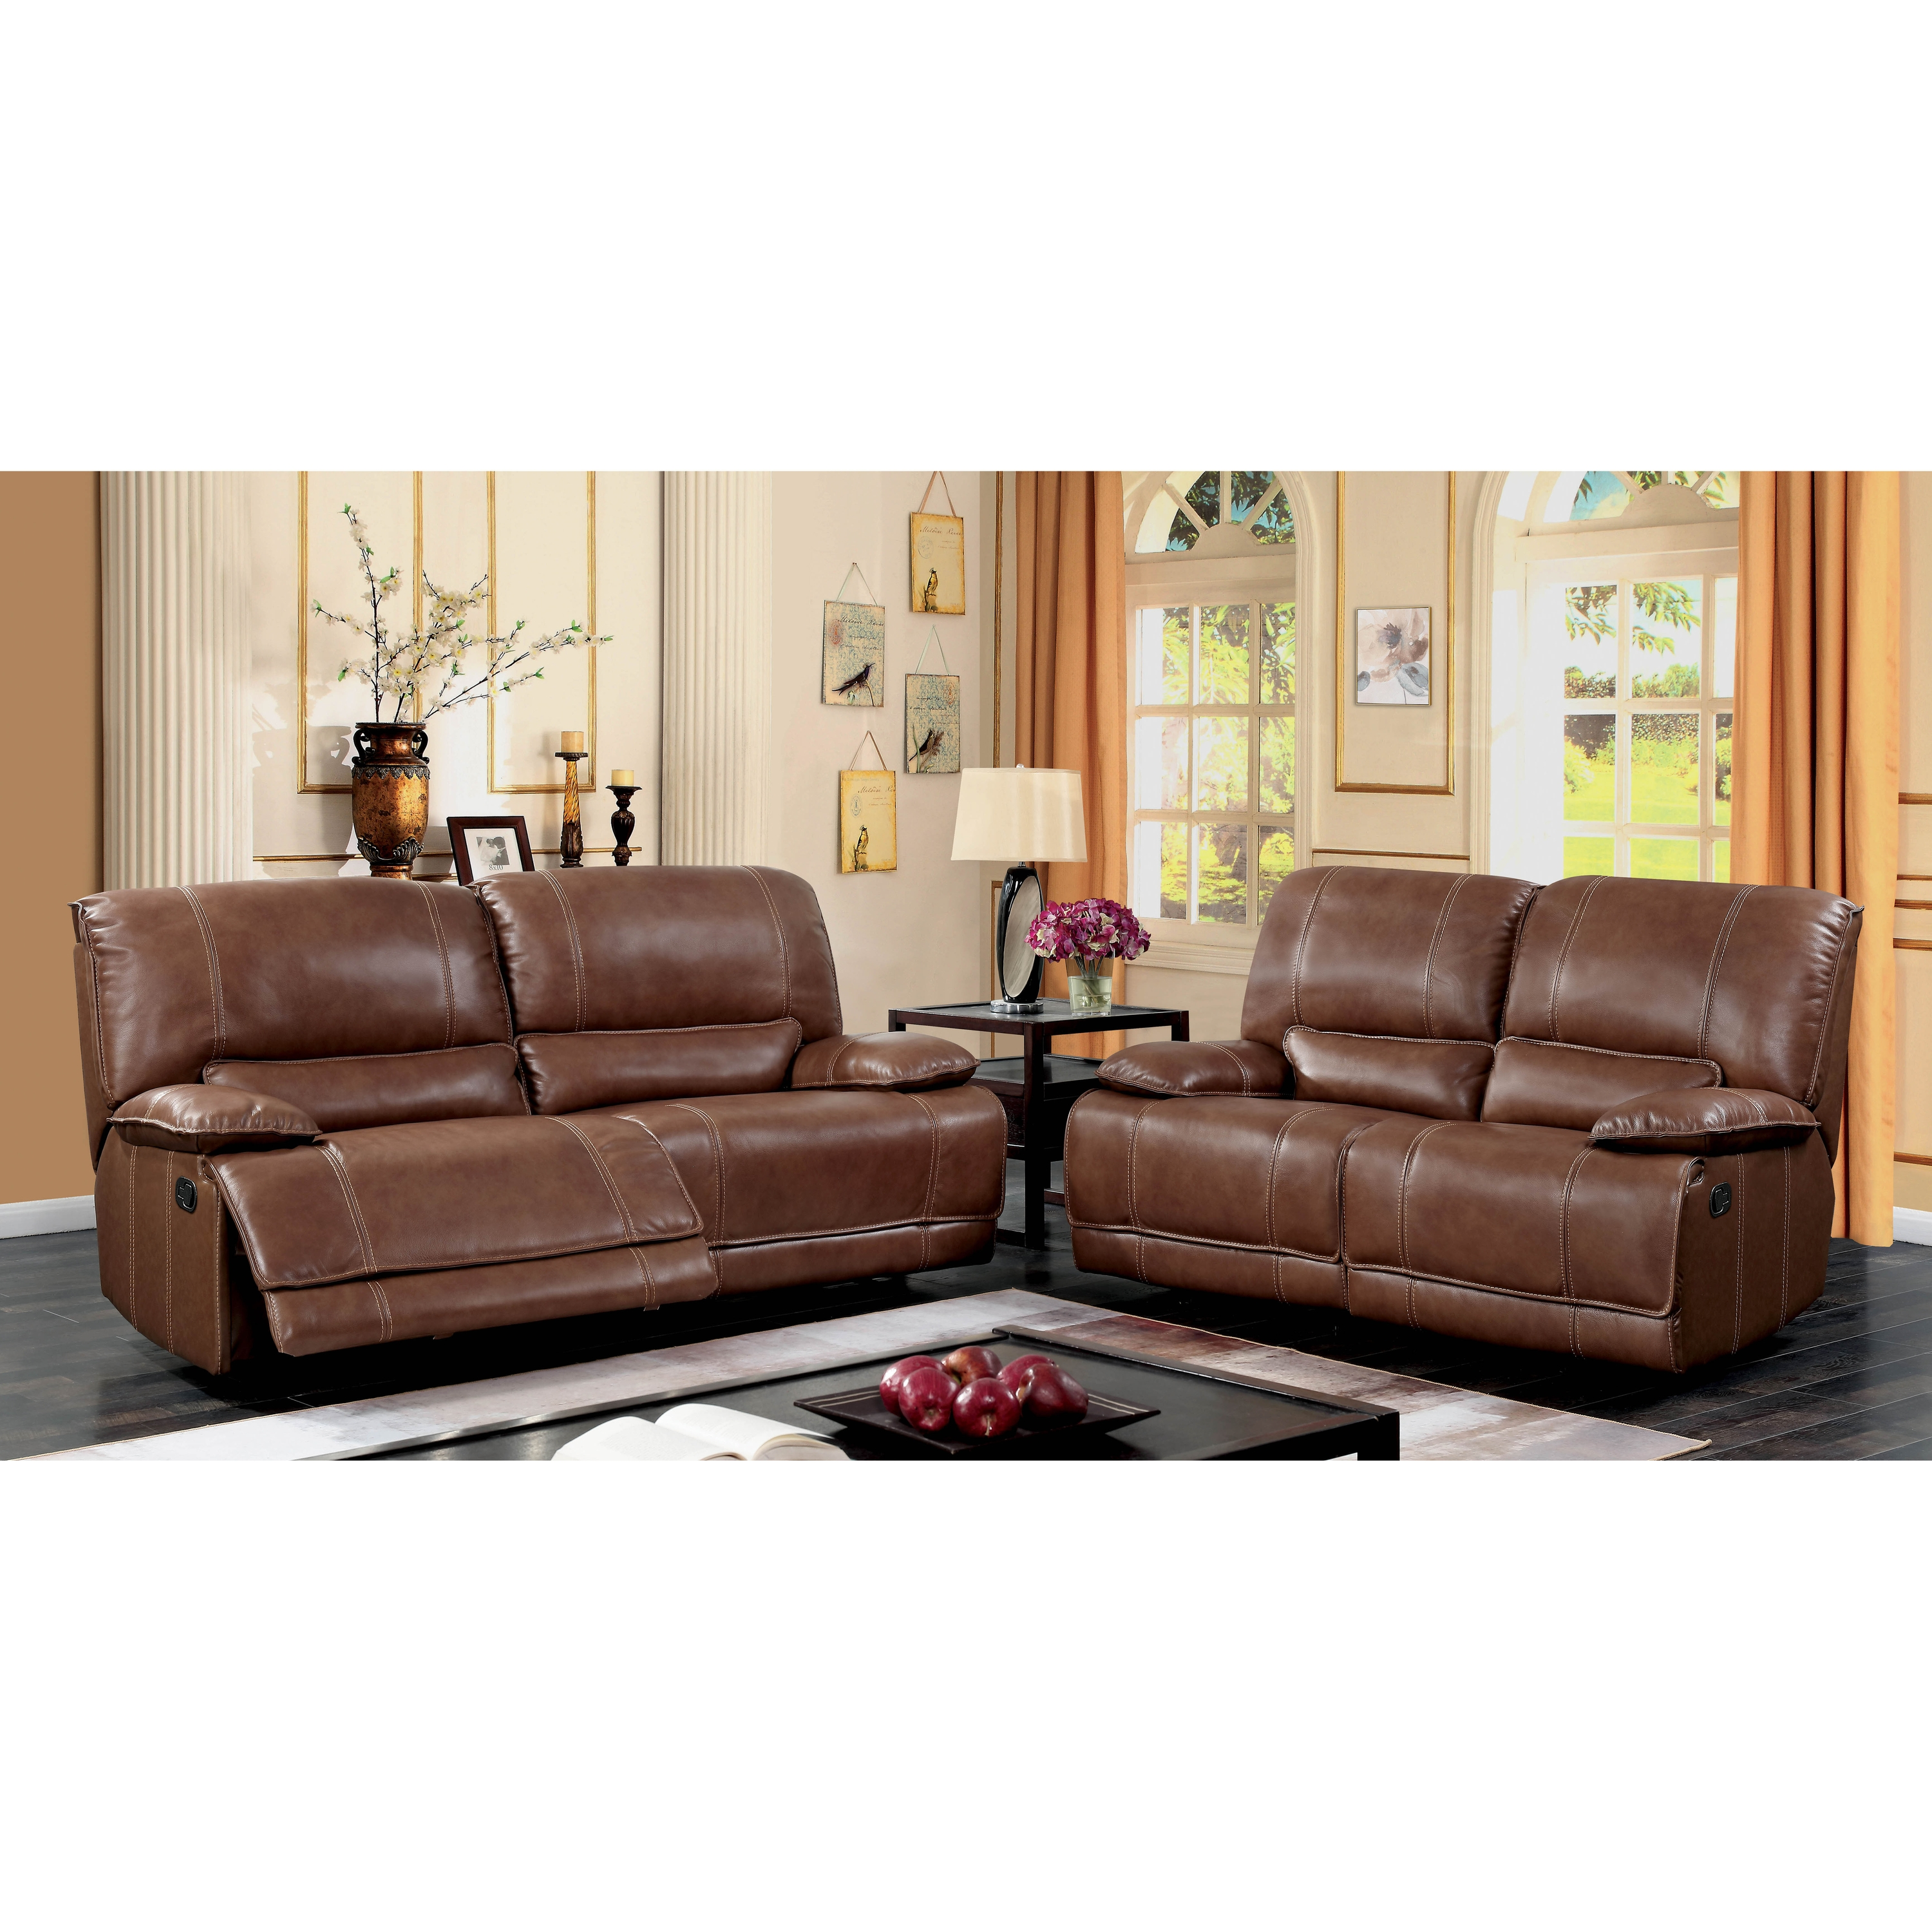 Furniture of America Cameron Brown Leather Recliner Sofa and Love Seat Set